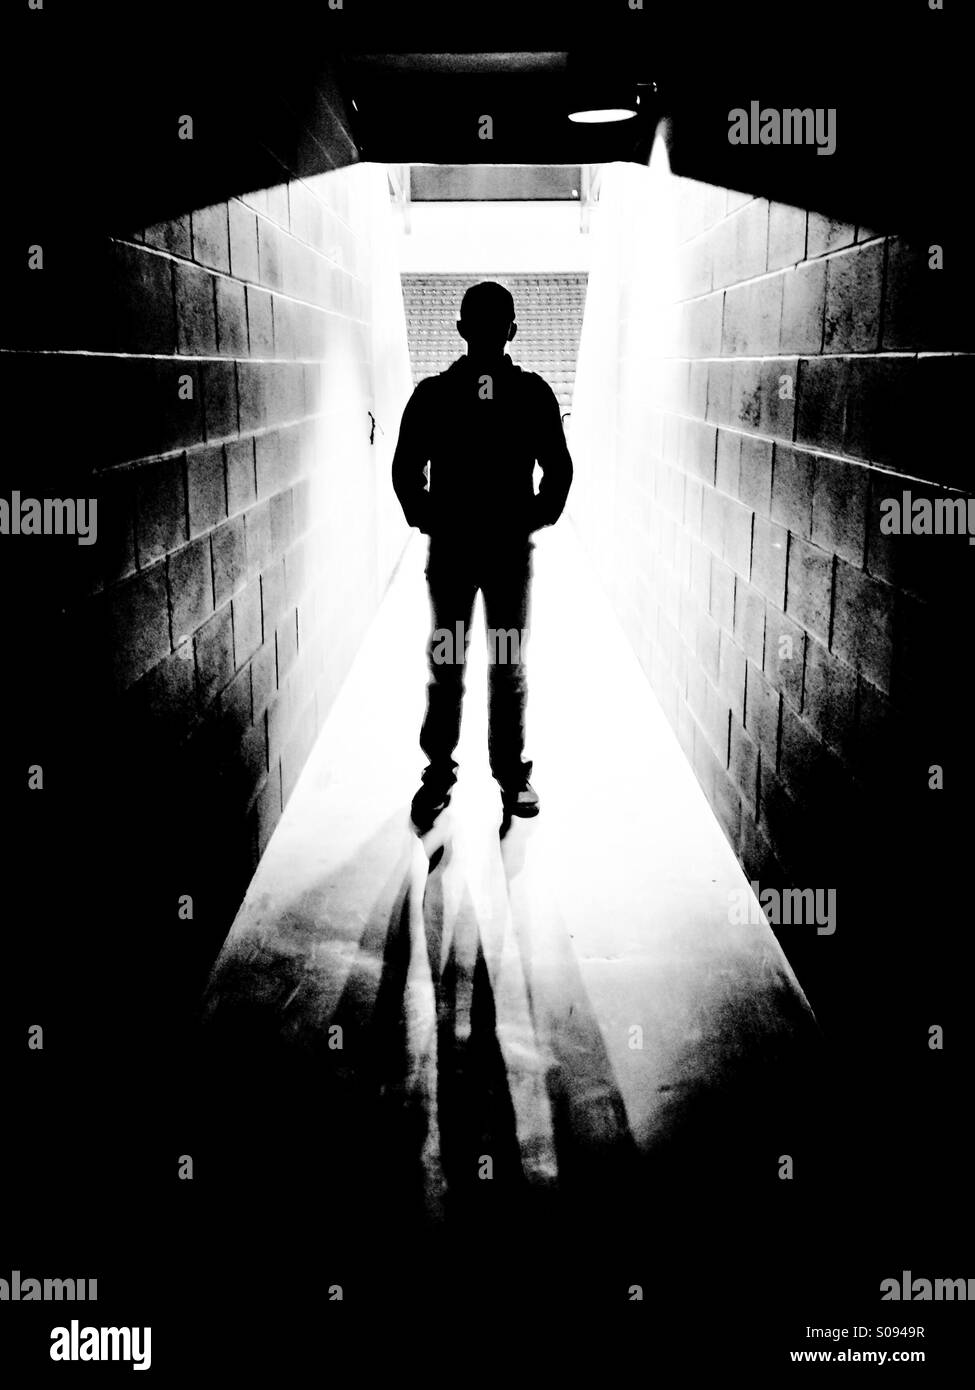 Silhouette of boy standing in arena tunnel with light shining from behind. - Stock Image